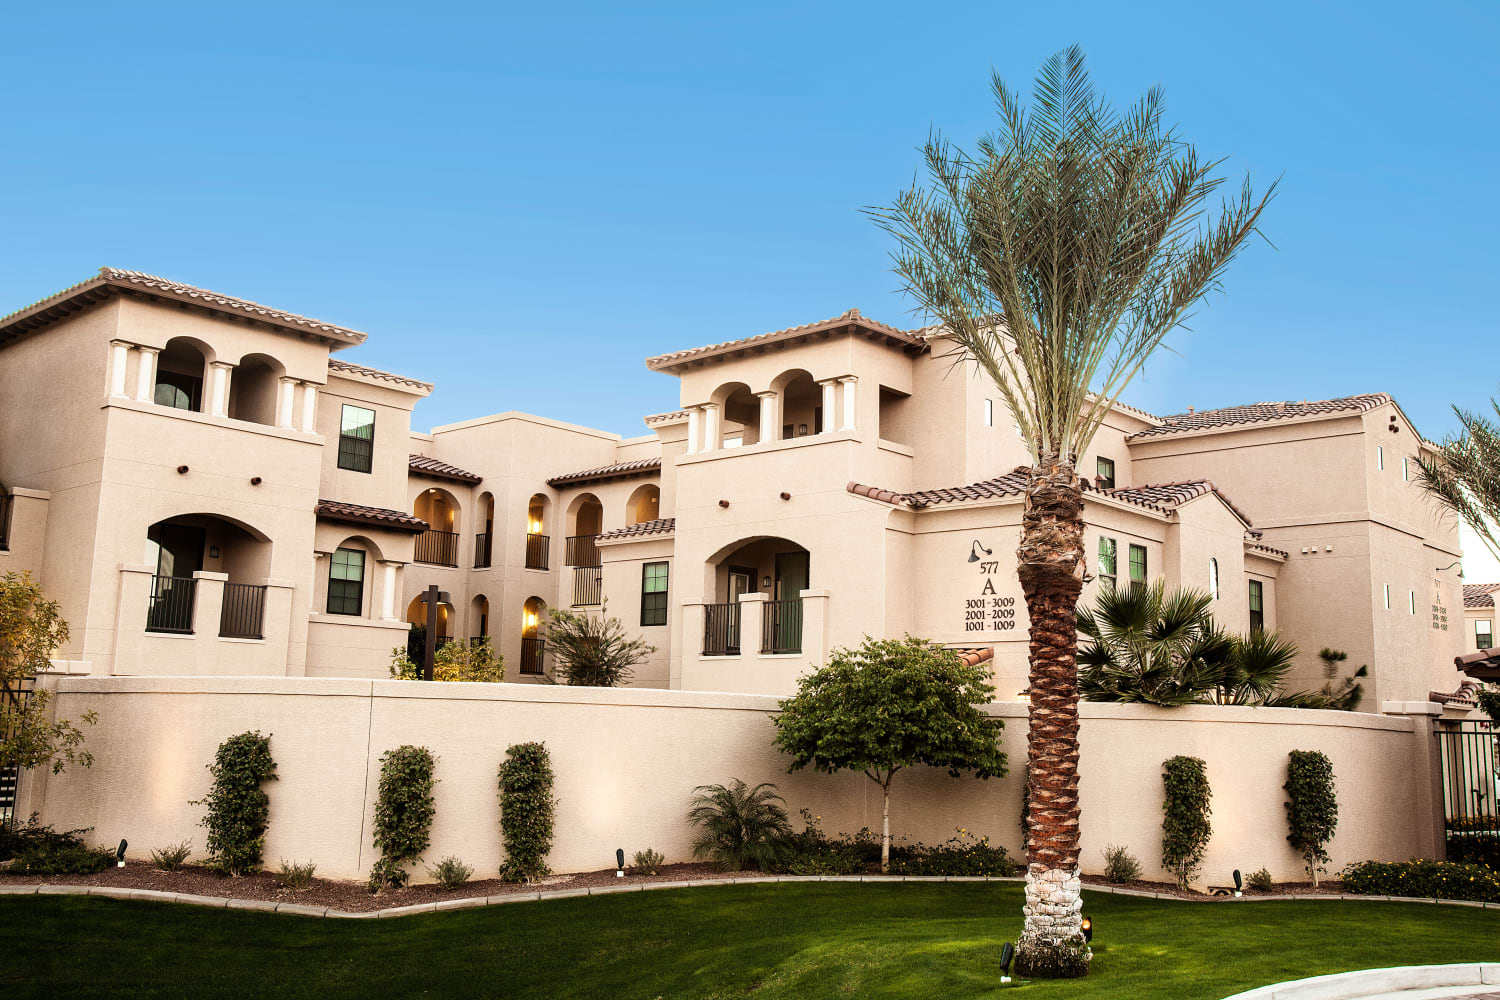 Elegantly designed exteriors at San Marquis in Tempe, Arizona